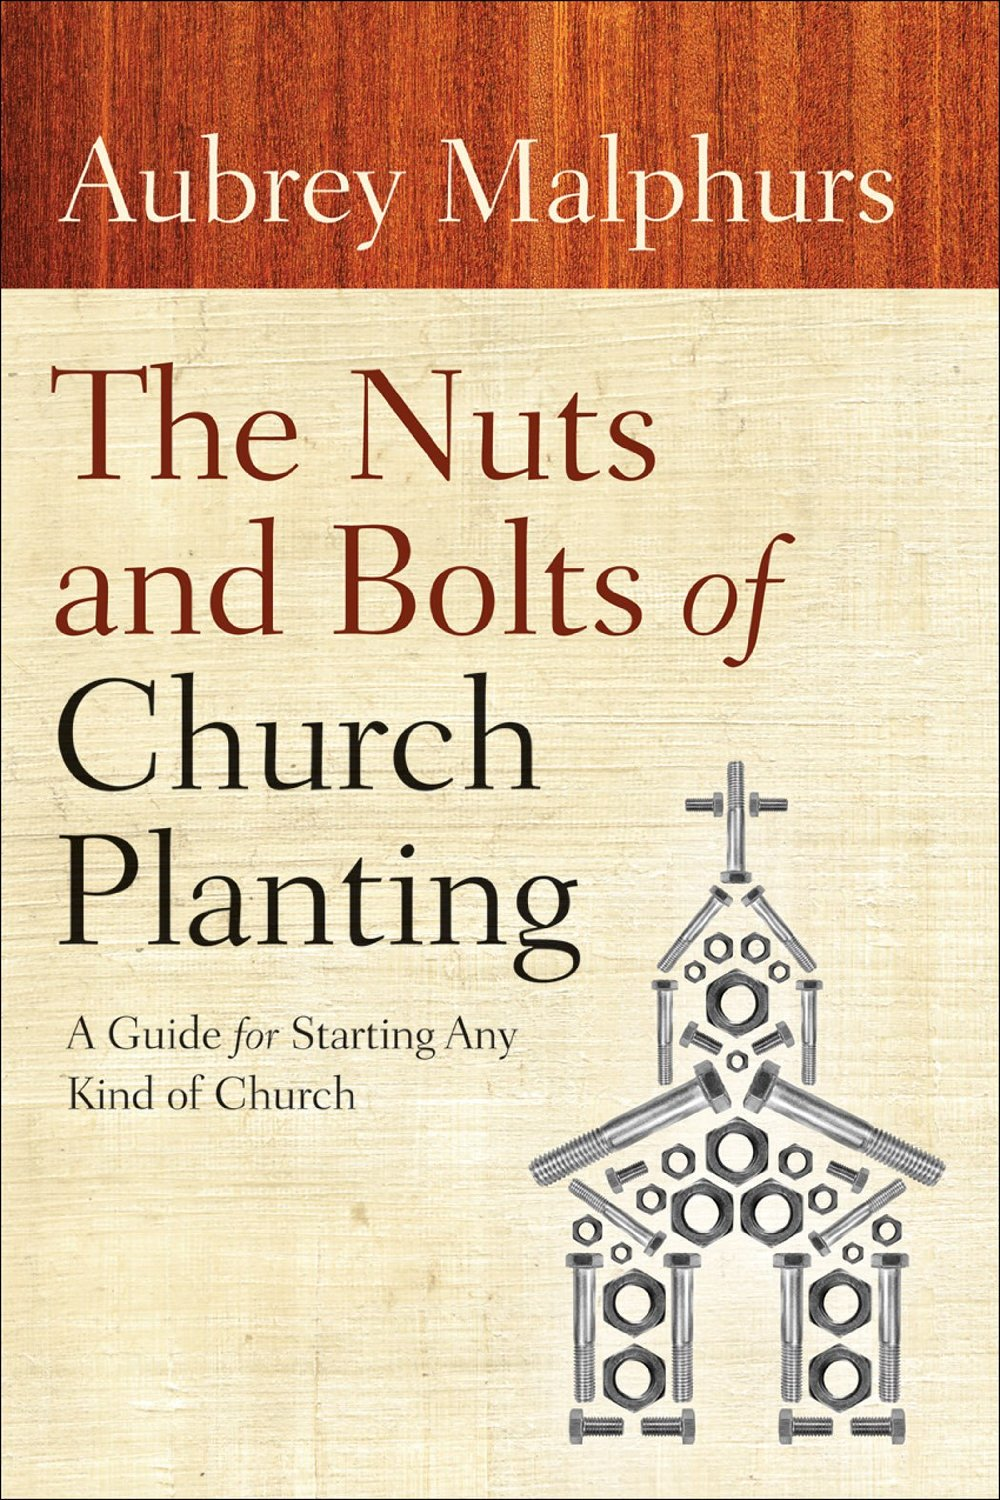 Nuts-and-Bolts-of-Church-Planting-Aubrey-Malphurs